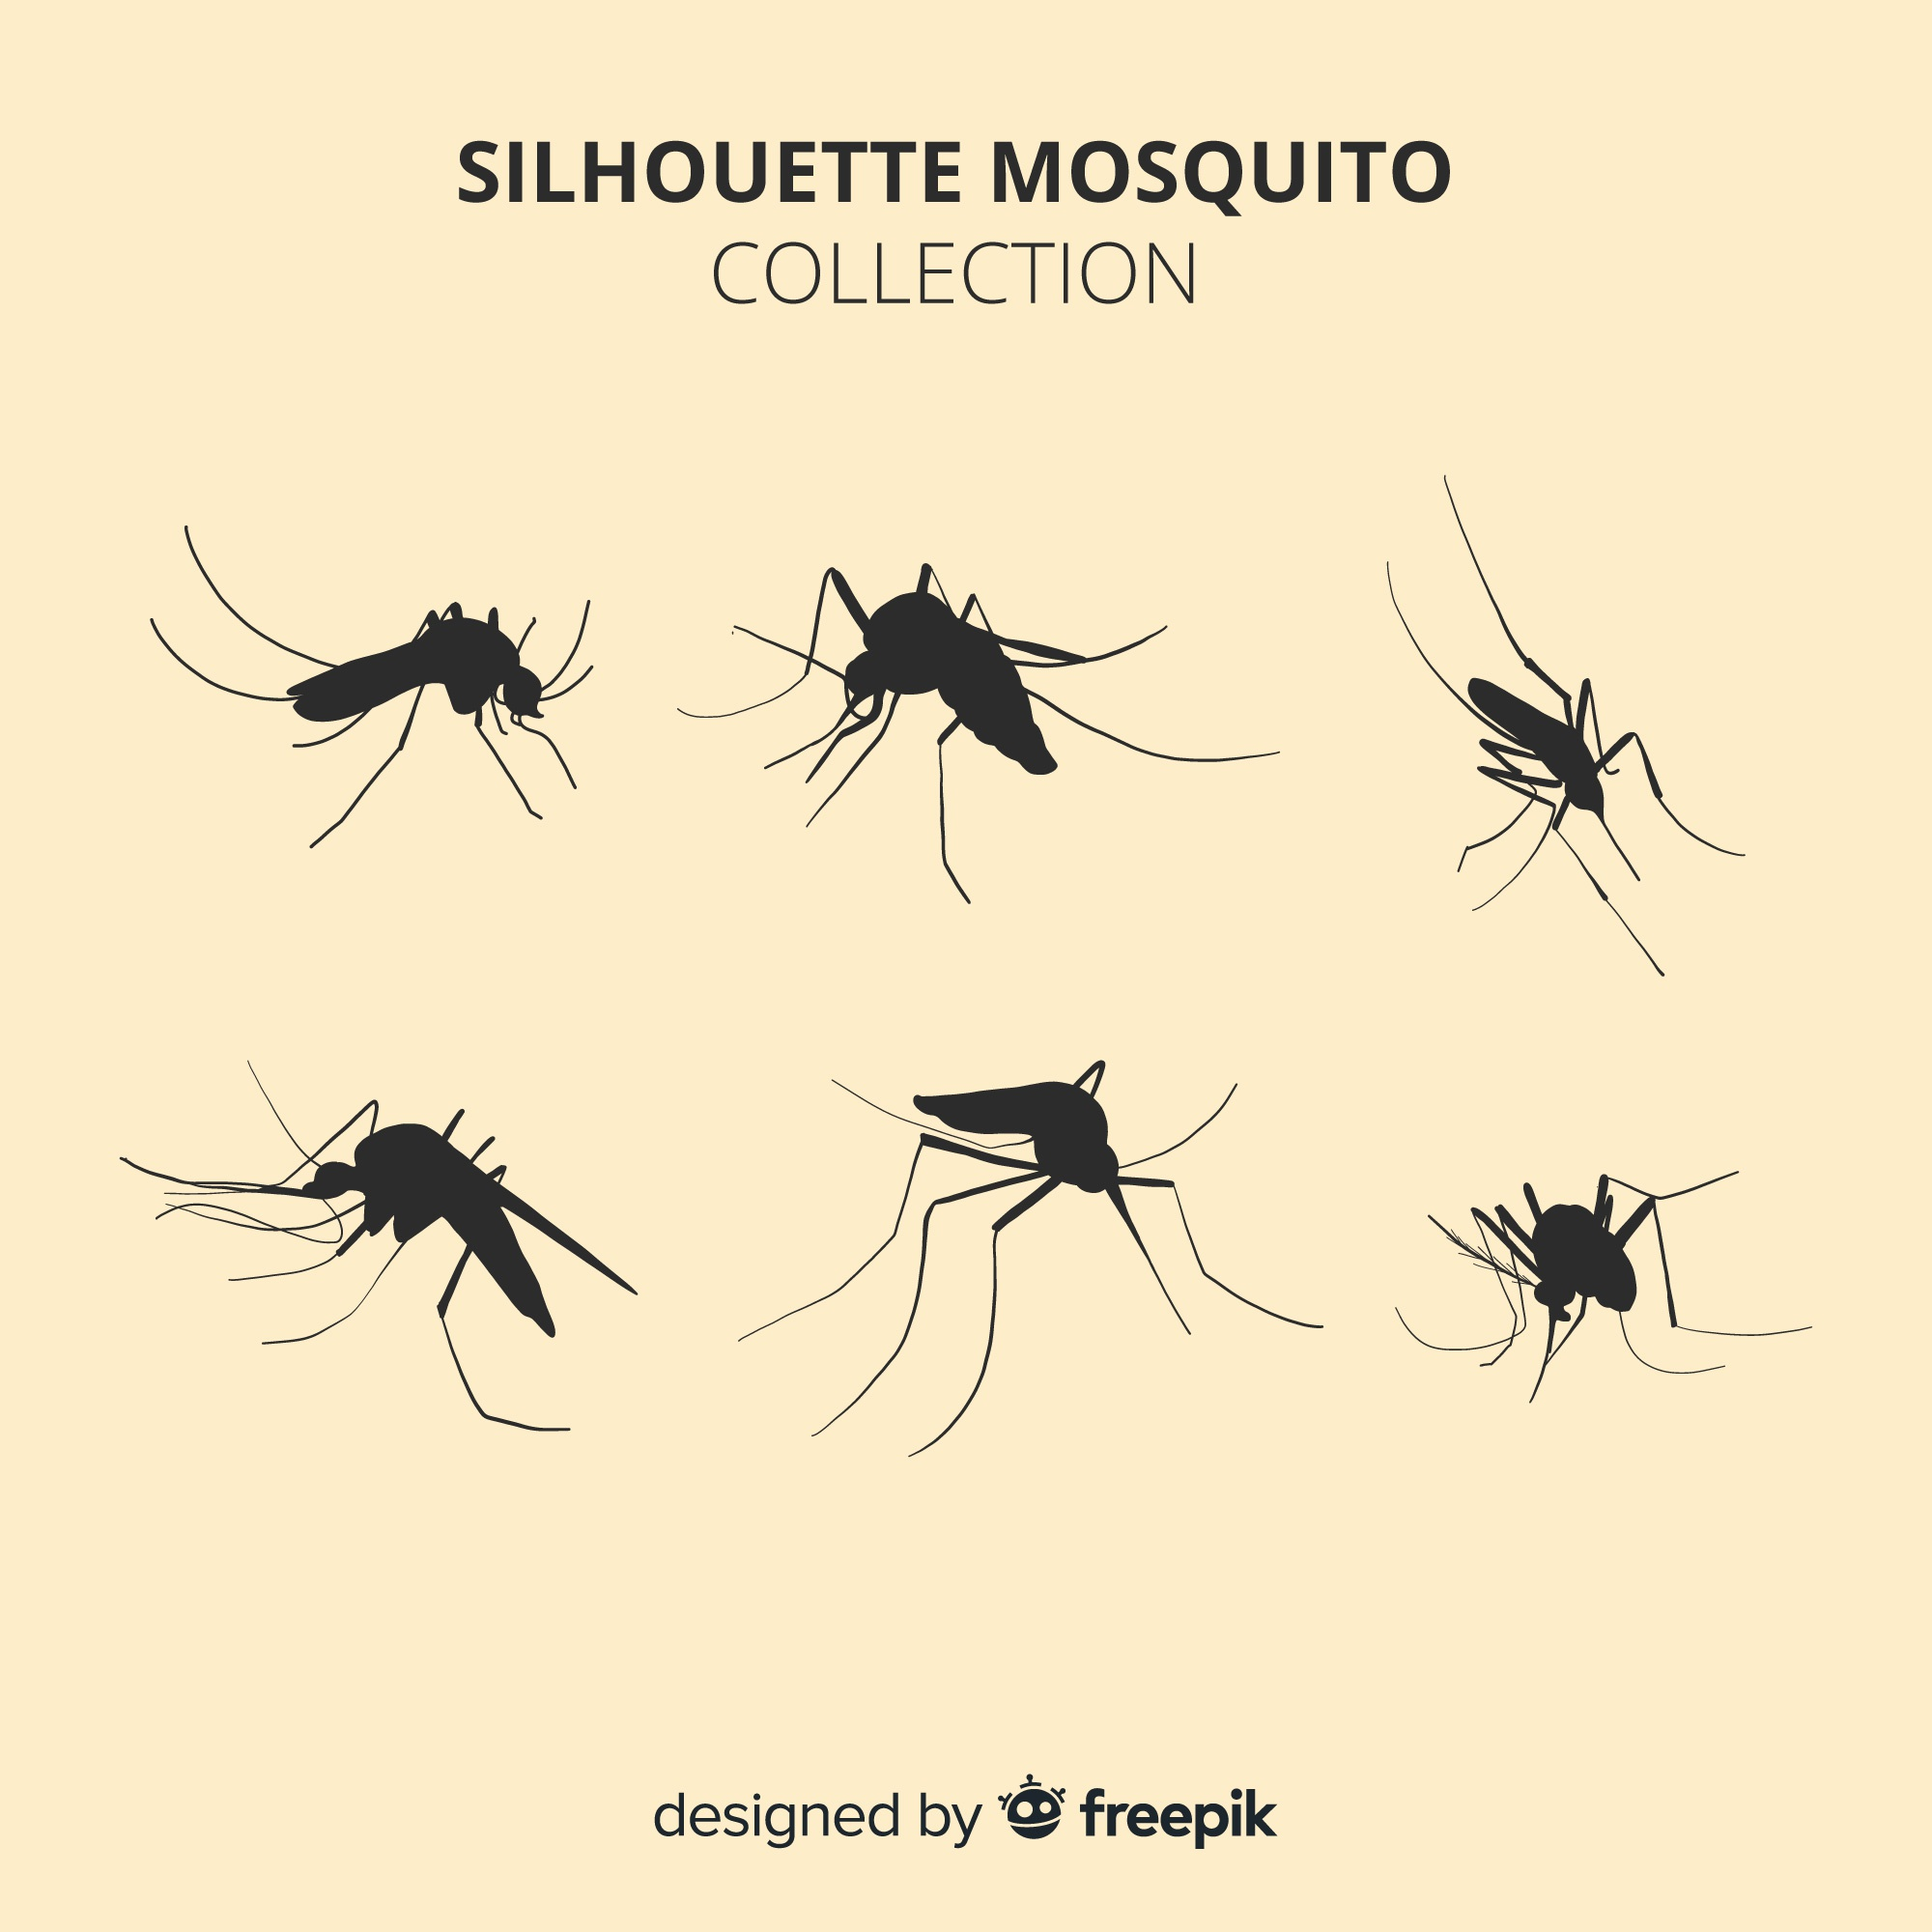 Creative mosquito silhouette pack